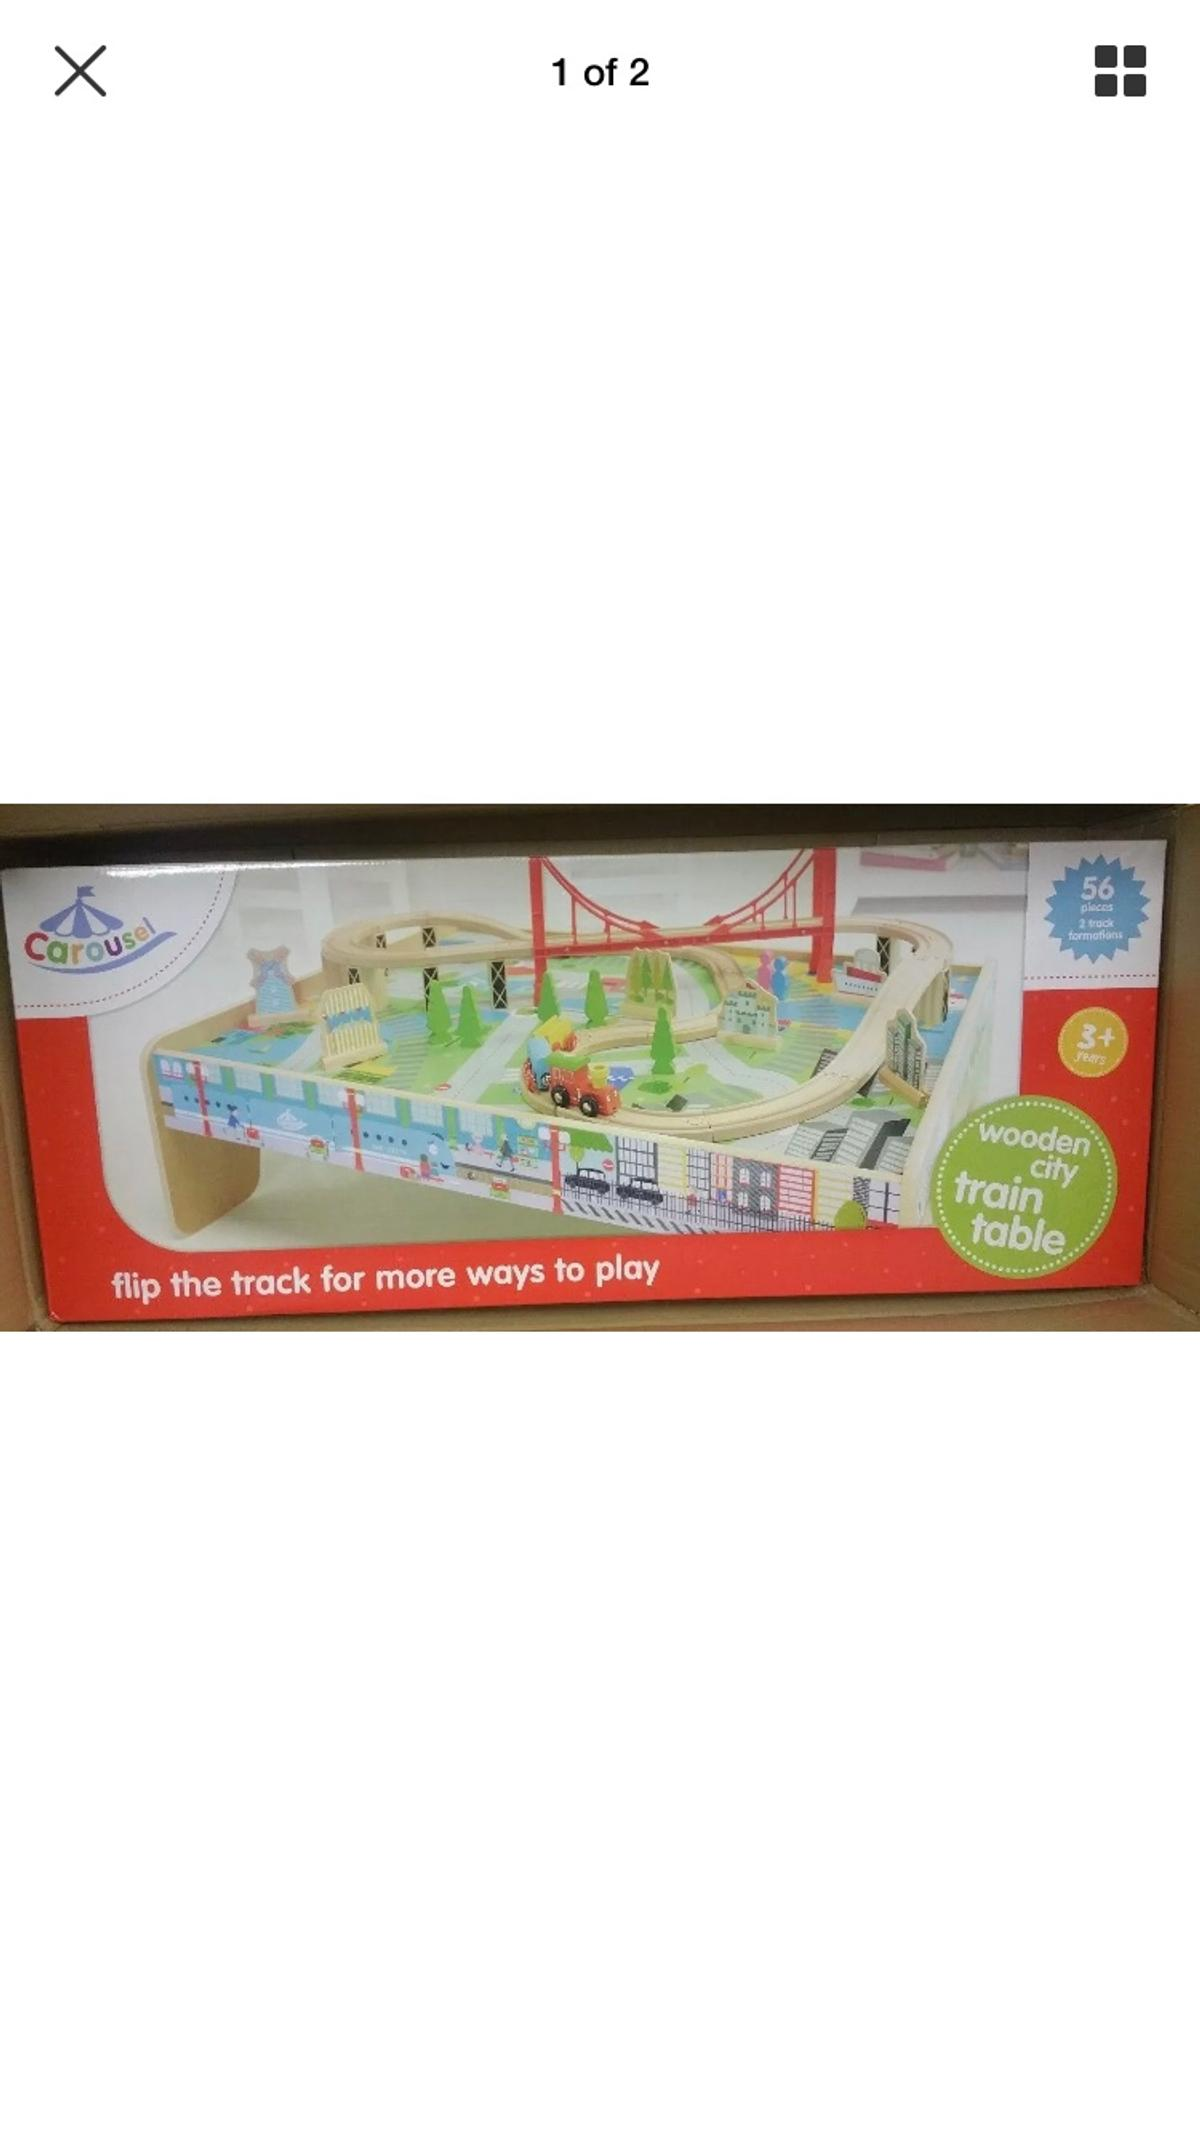 Resell Carousel Wooden Train Table Bnib